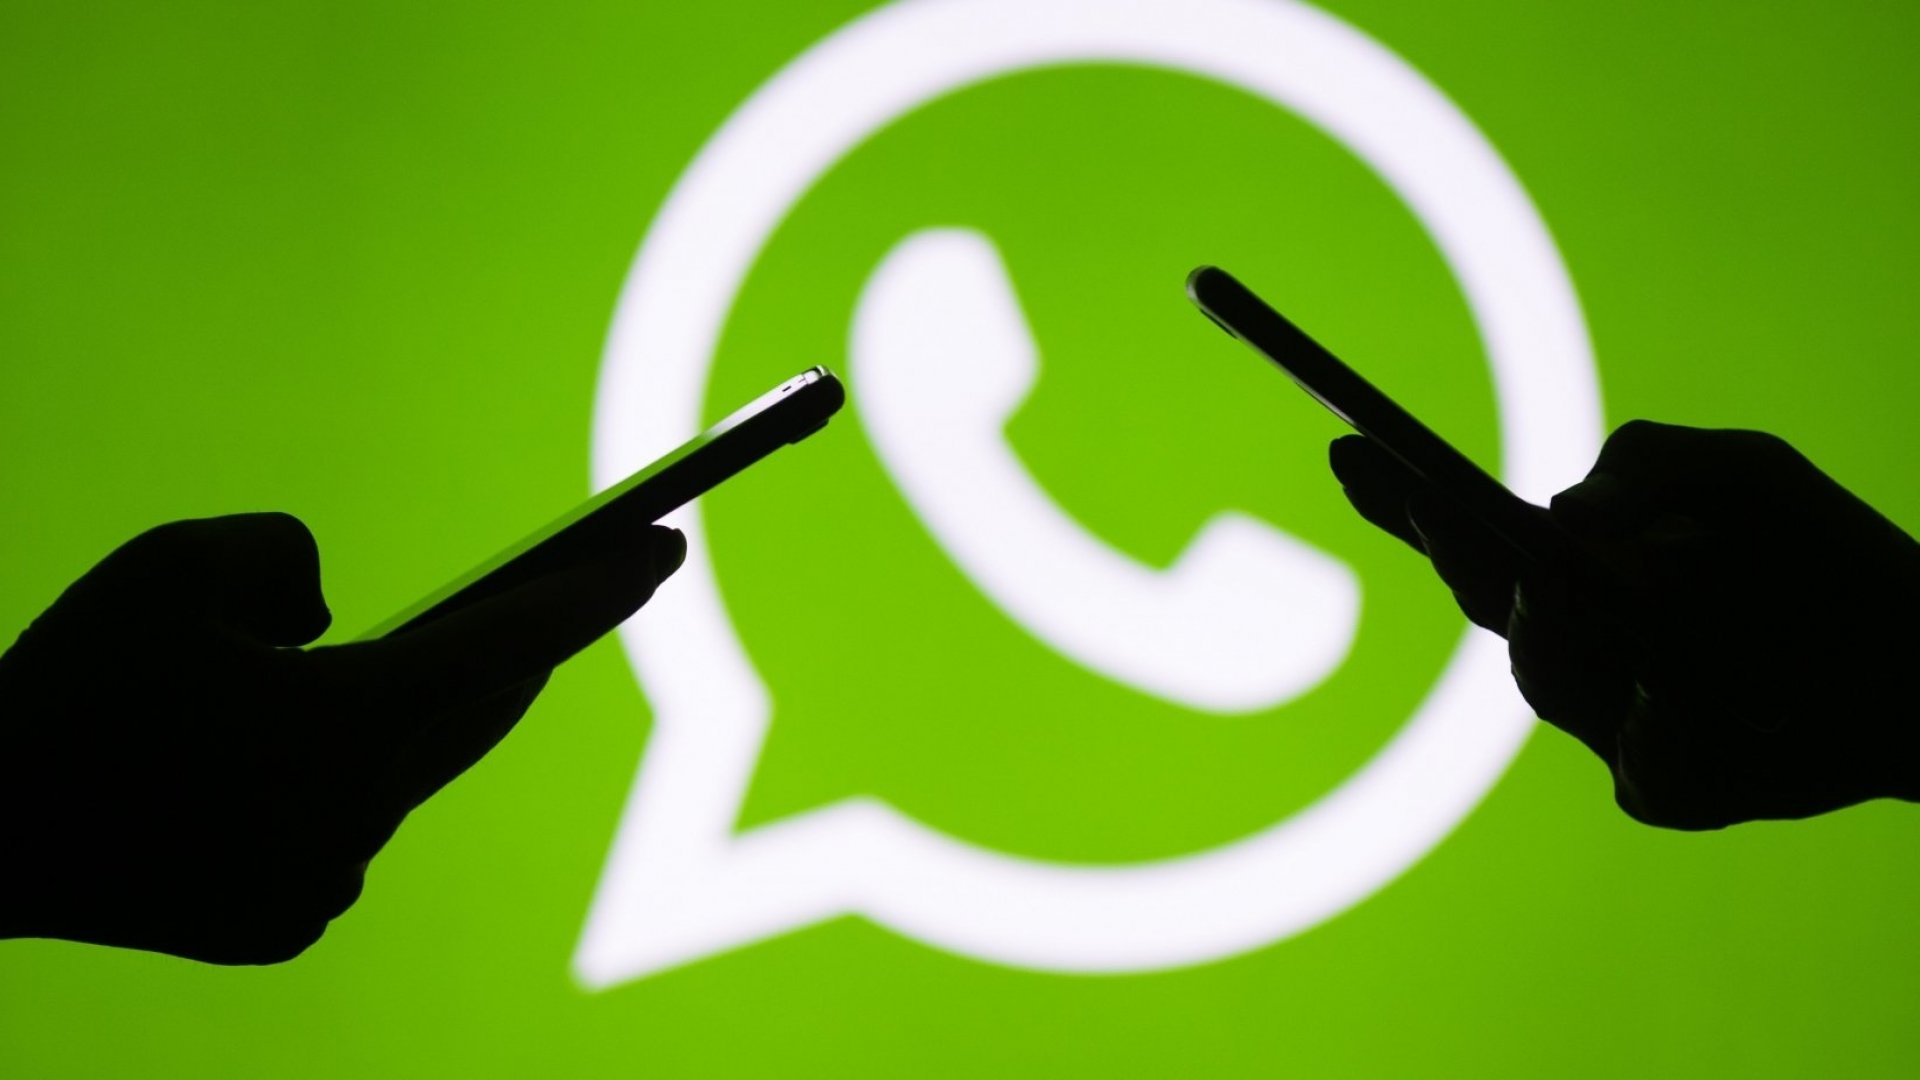 WhatsApp Has a New Feature That's Going to Make It a lot of Money